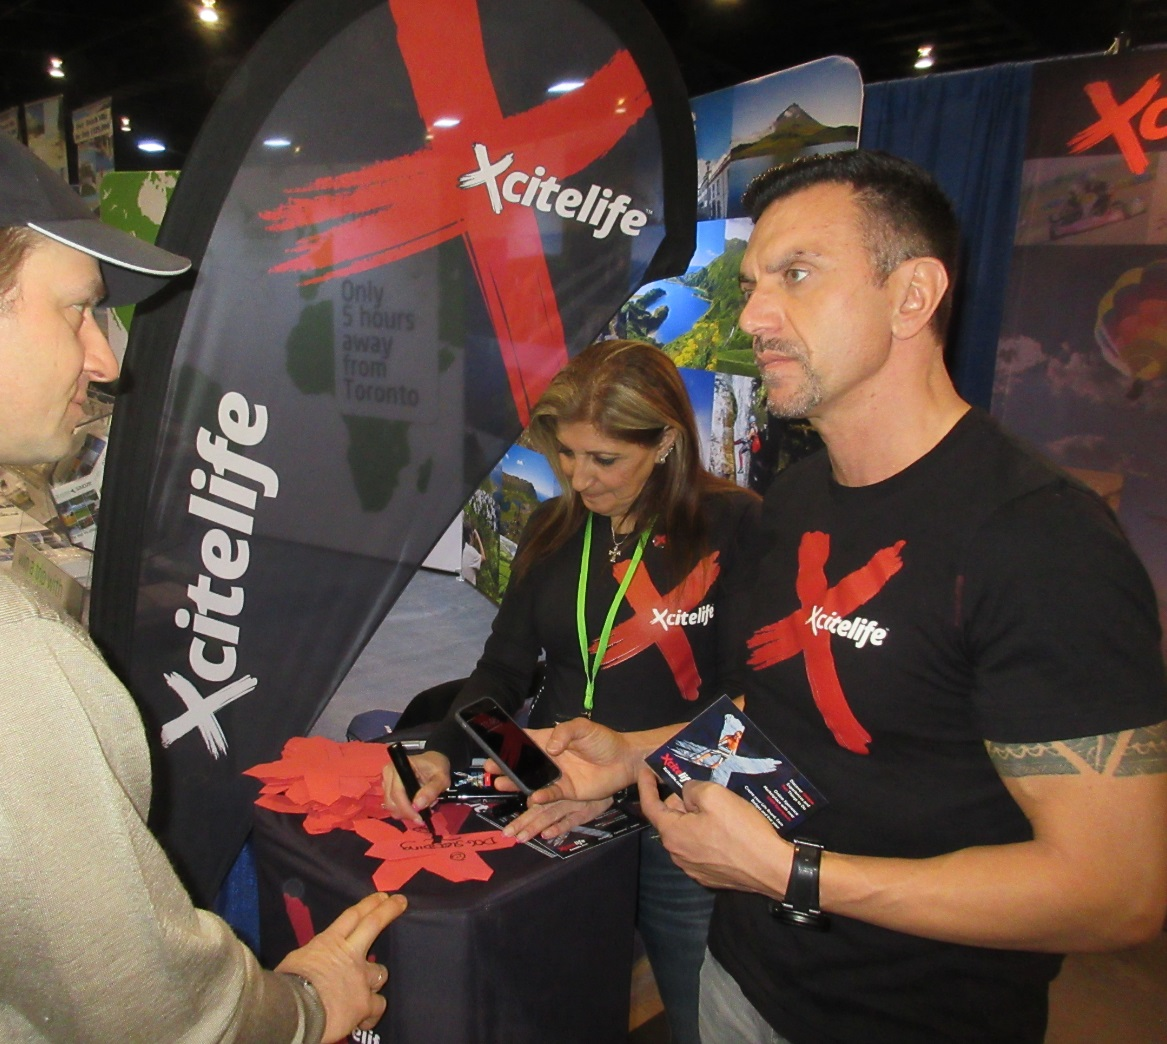 Paul Peic listens at Xcitelife-at-Outdoor Adventure Show 2016